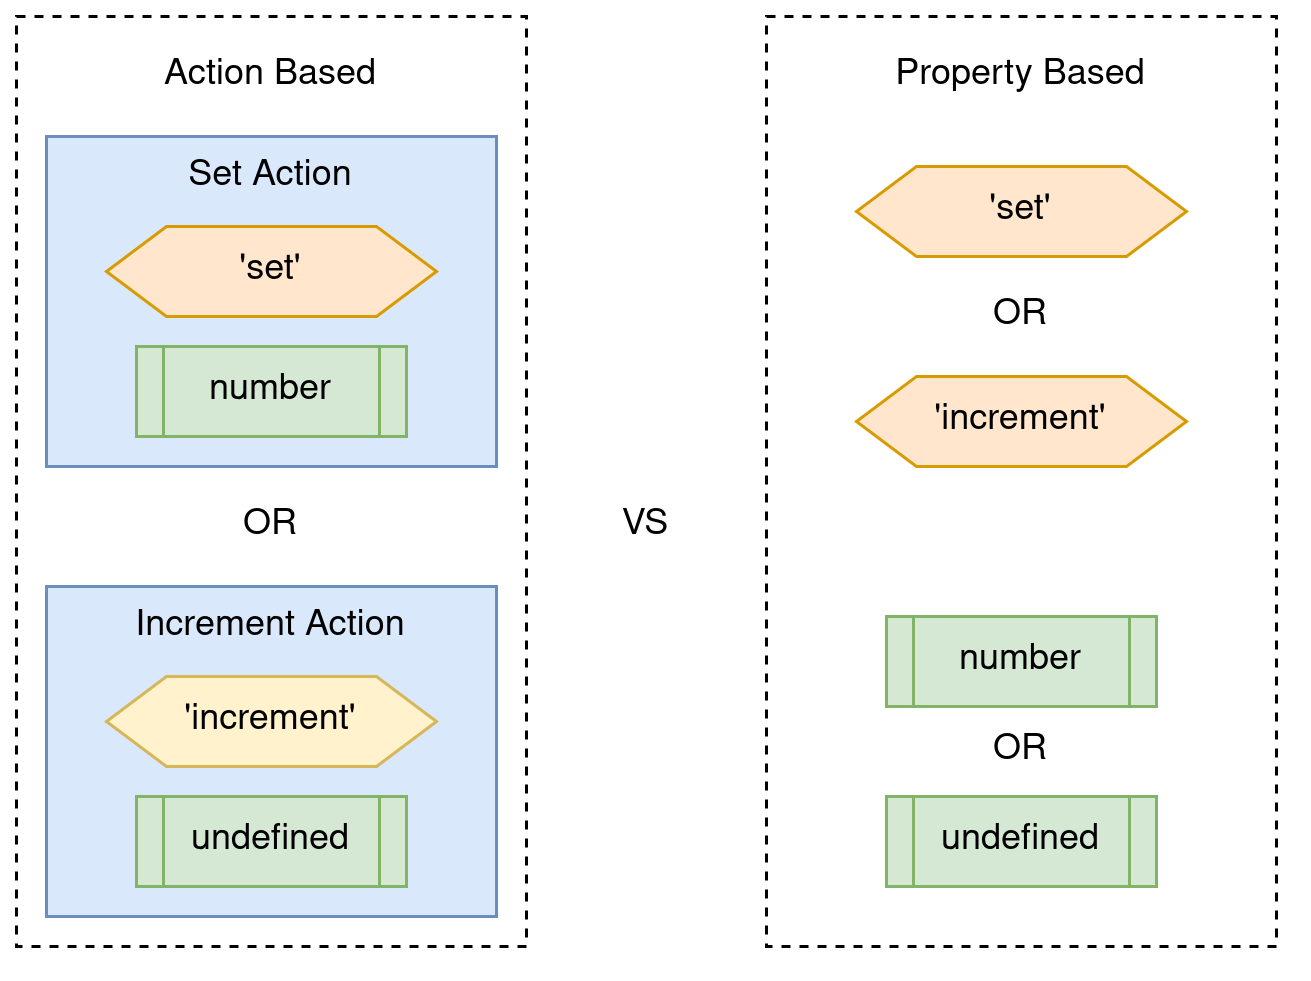 Using our method, we specify that the action must either have type set and payload number of it must have type increment and payload undefined. The proposed method would allow any action with either type set or type increment and either payload number of payload undefined.